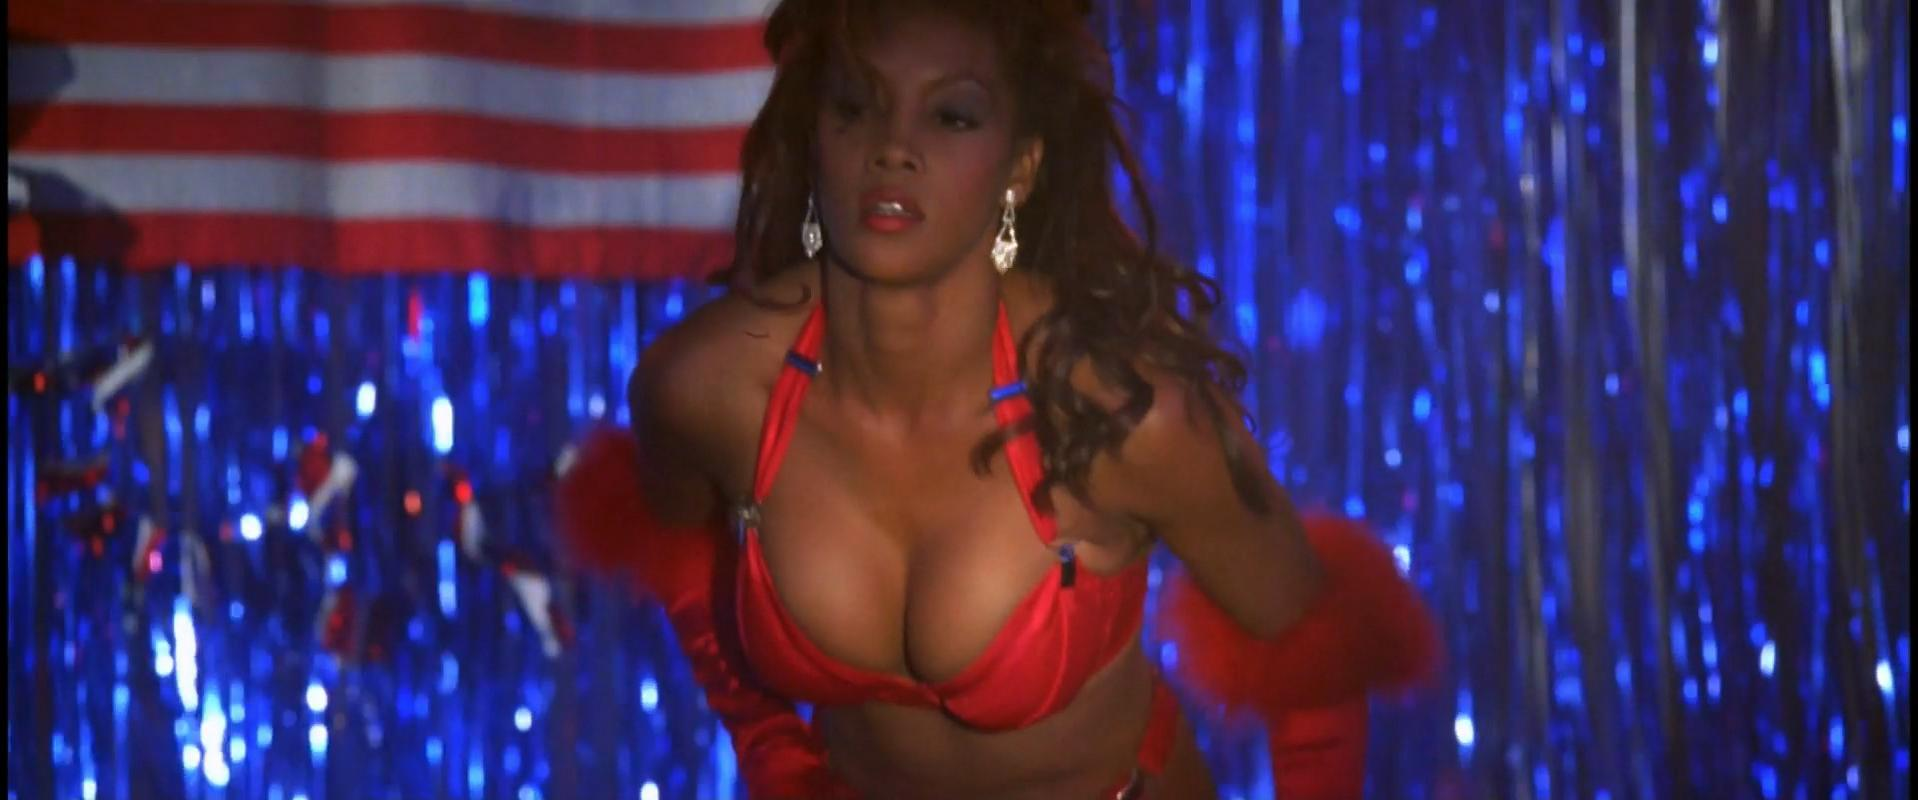 Vivica a fox sex tape footage